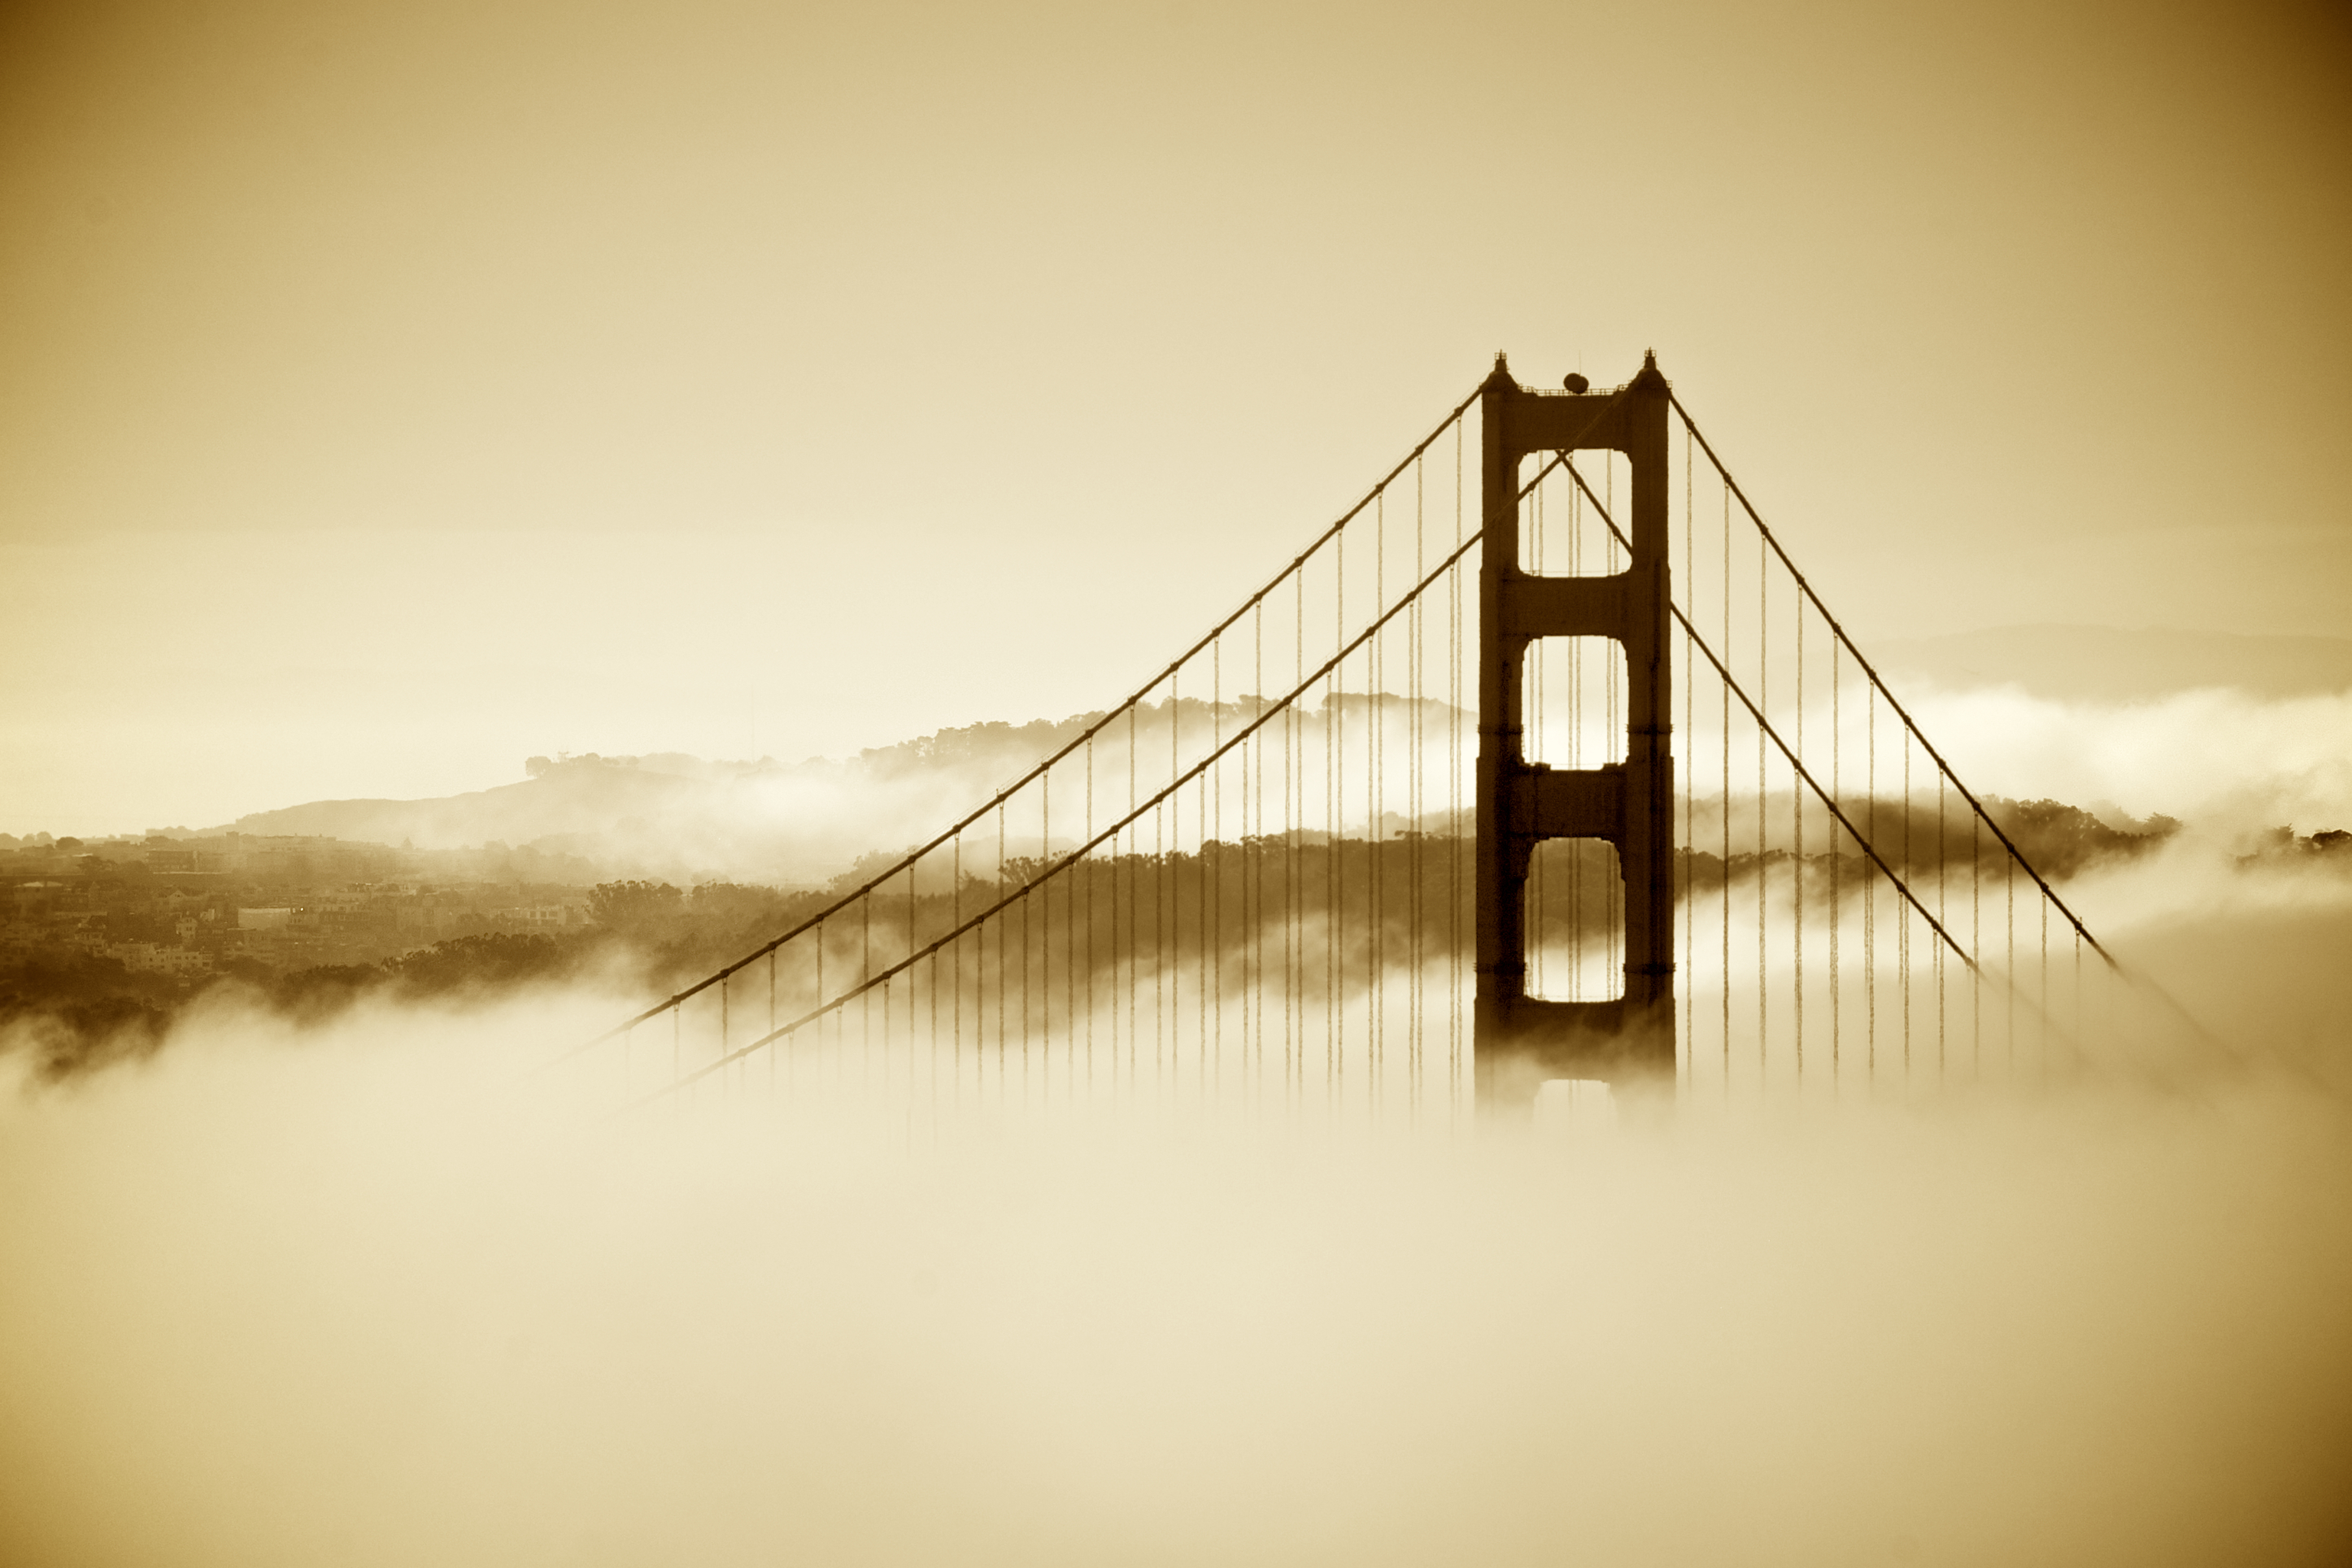 Golden Gate Bridge, San Francisco US